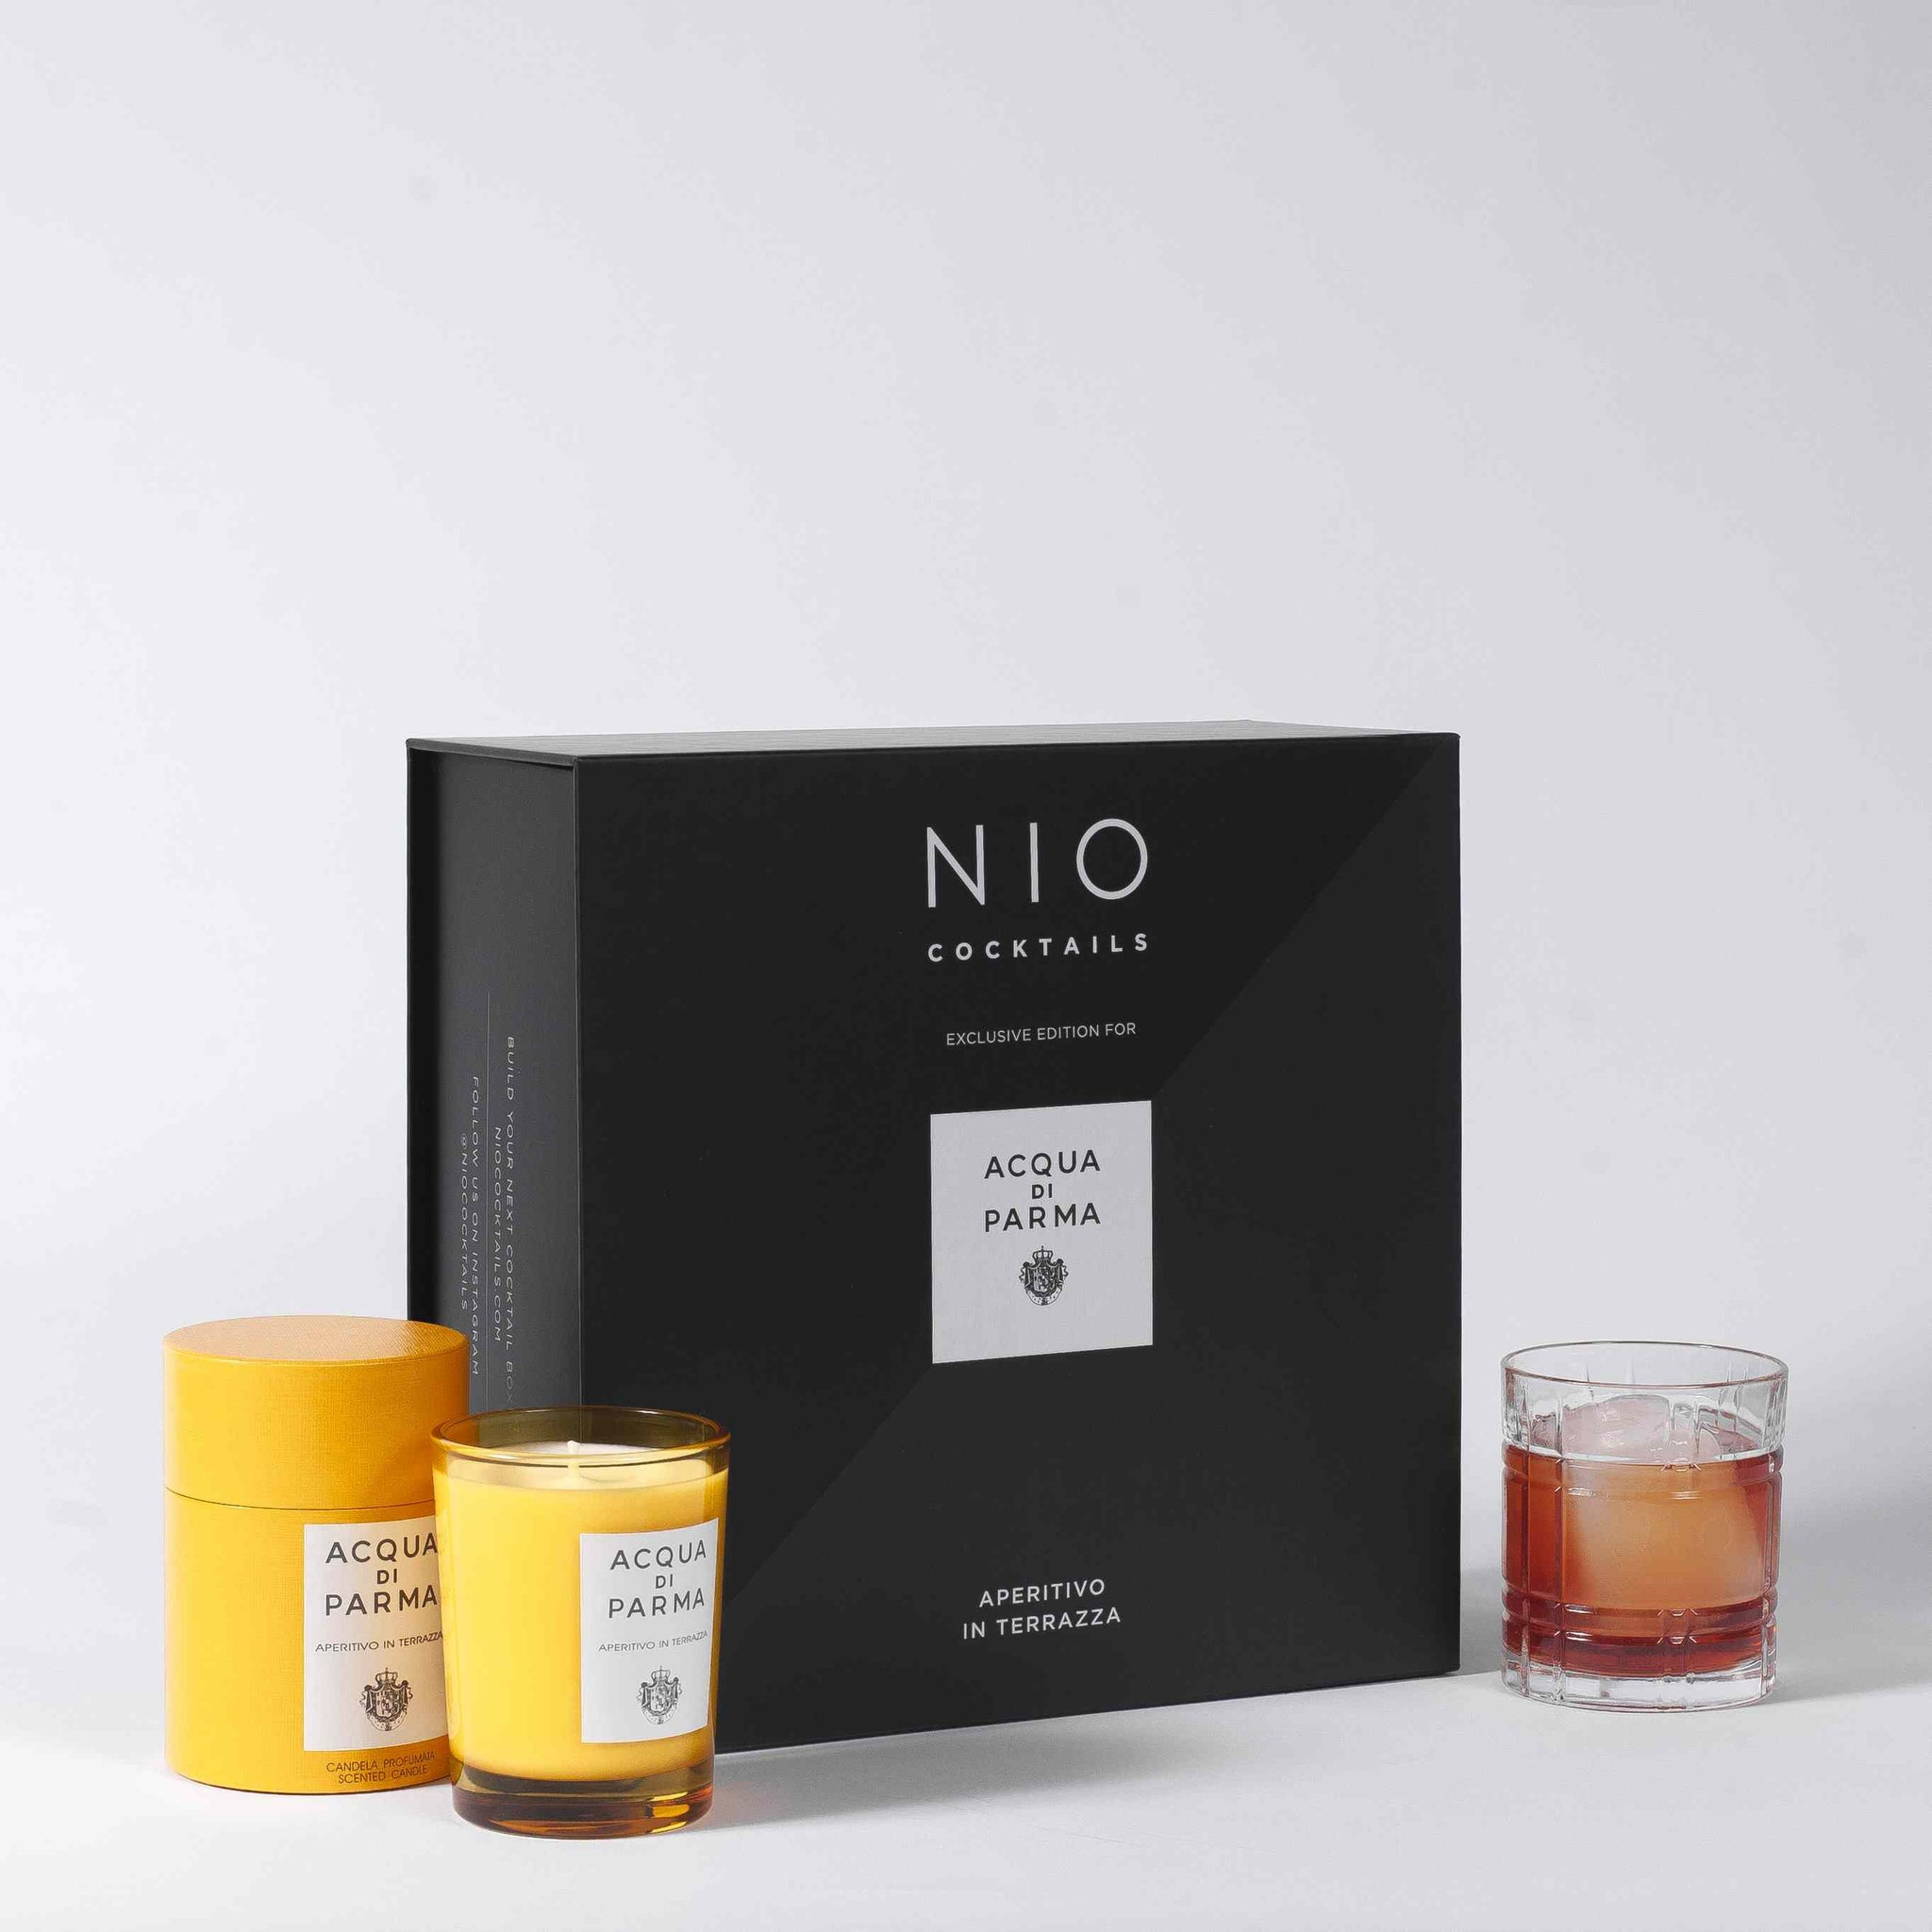 NIO_Cocktails_Acqua_di_Parma_box